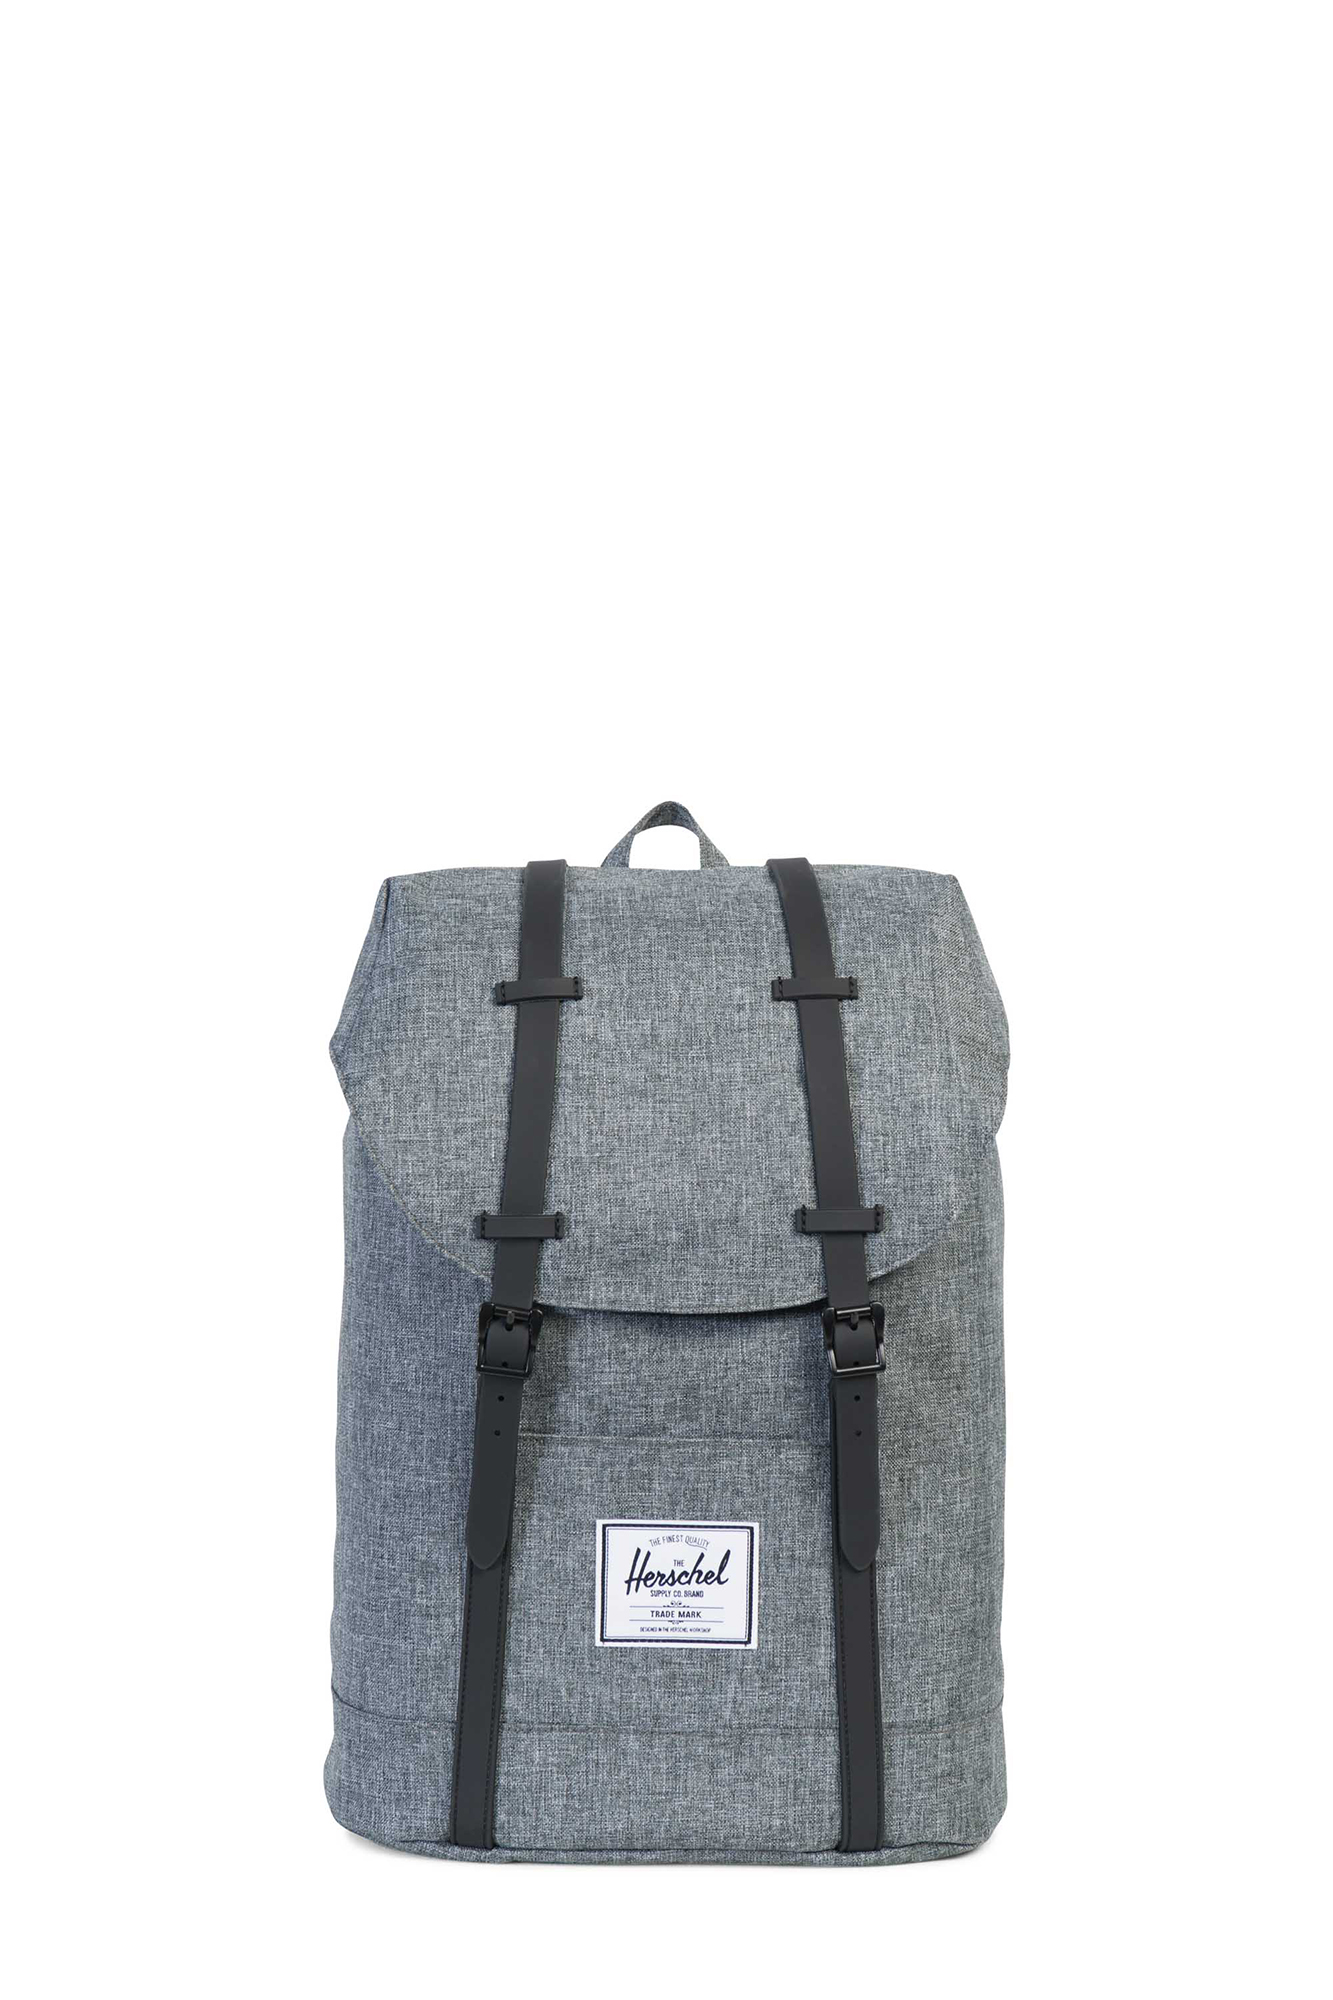 Herschel - Raven / Black Retreat Backpack